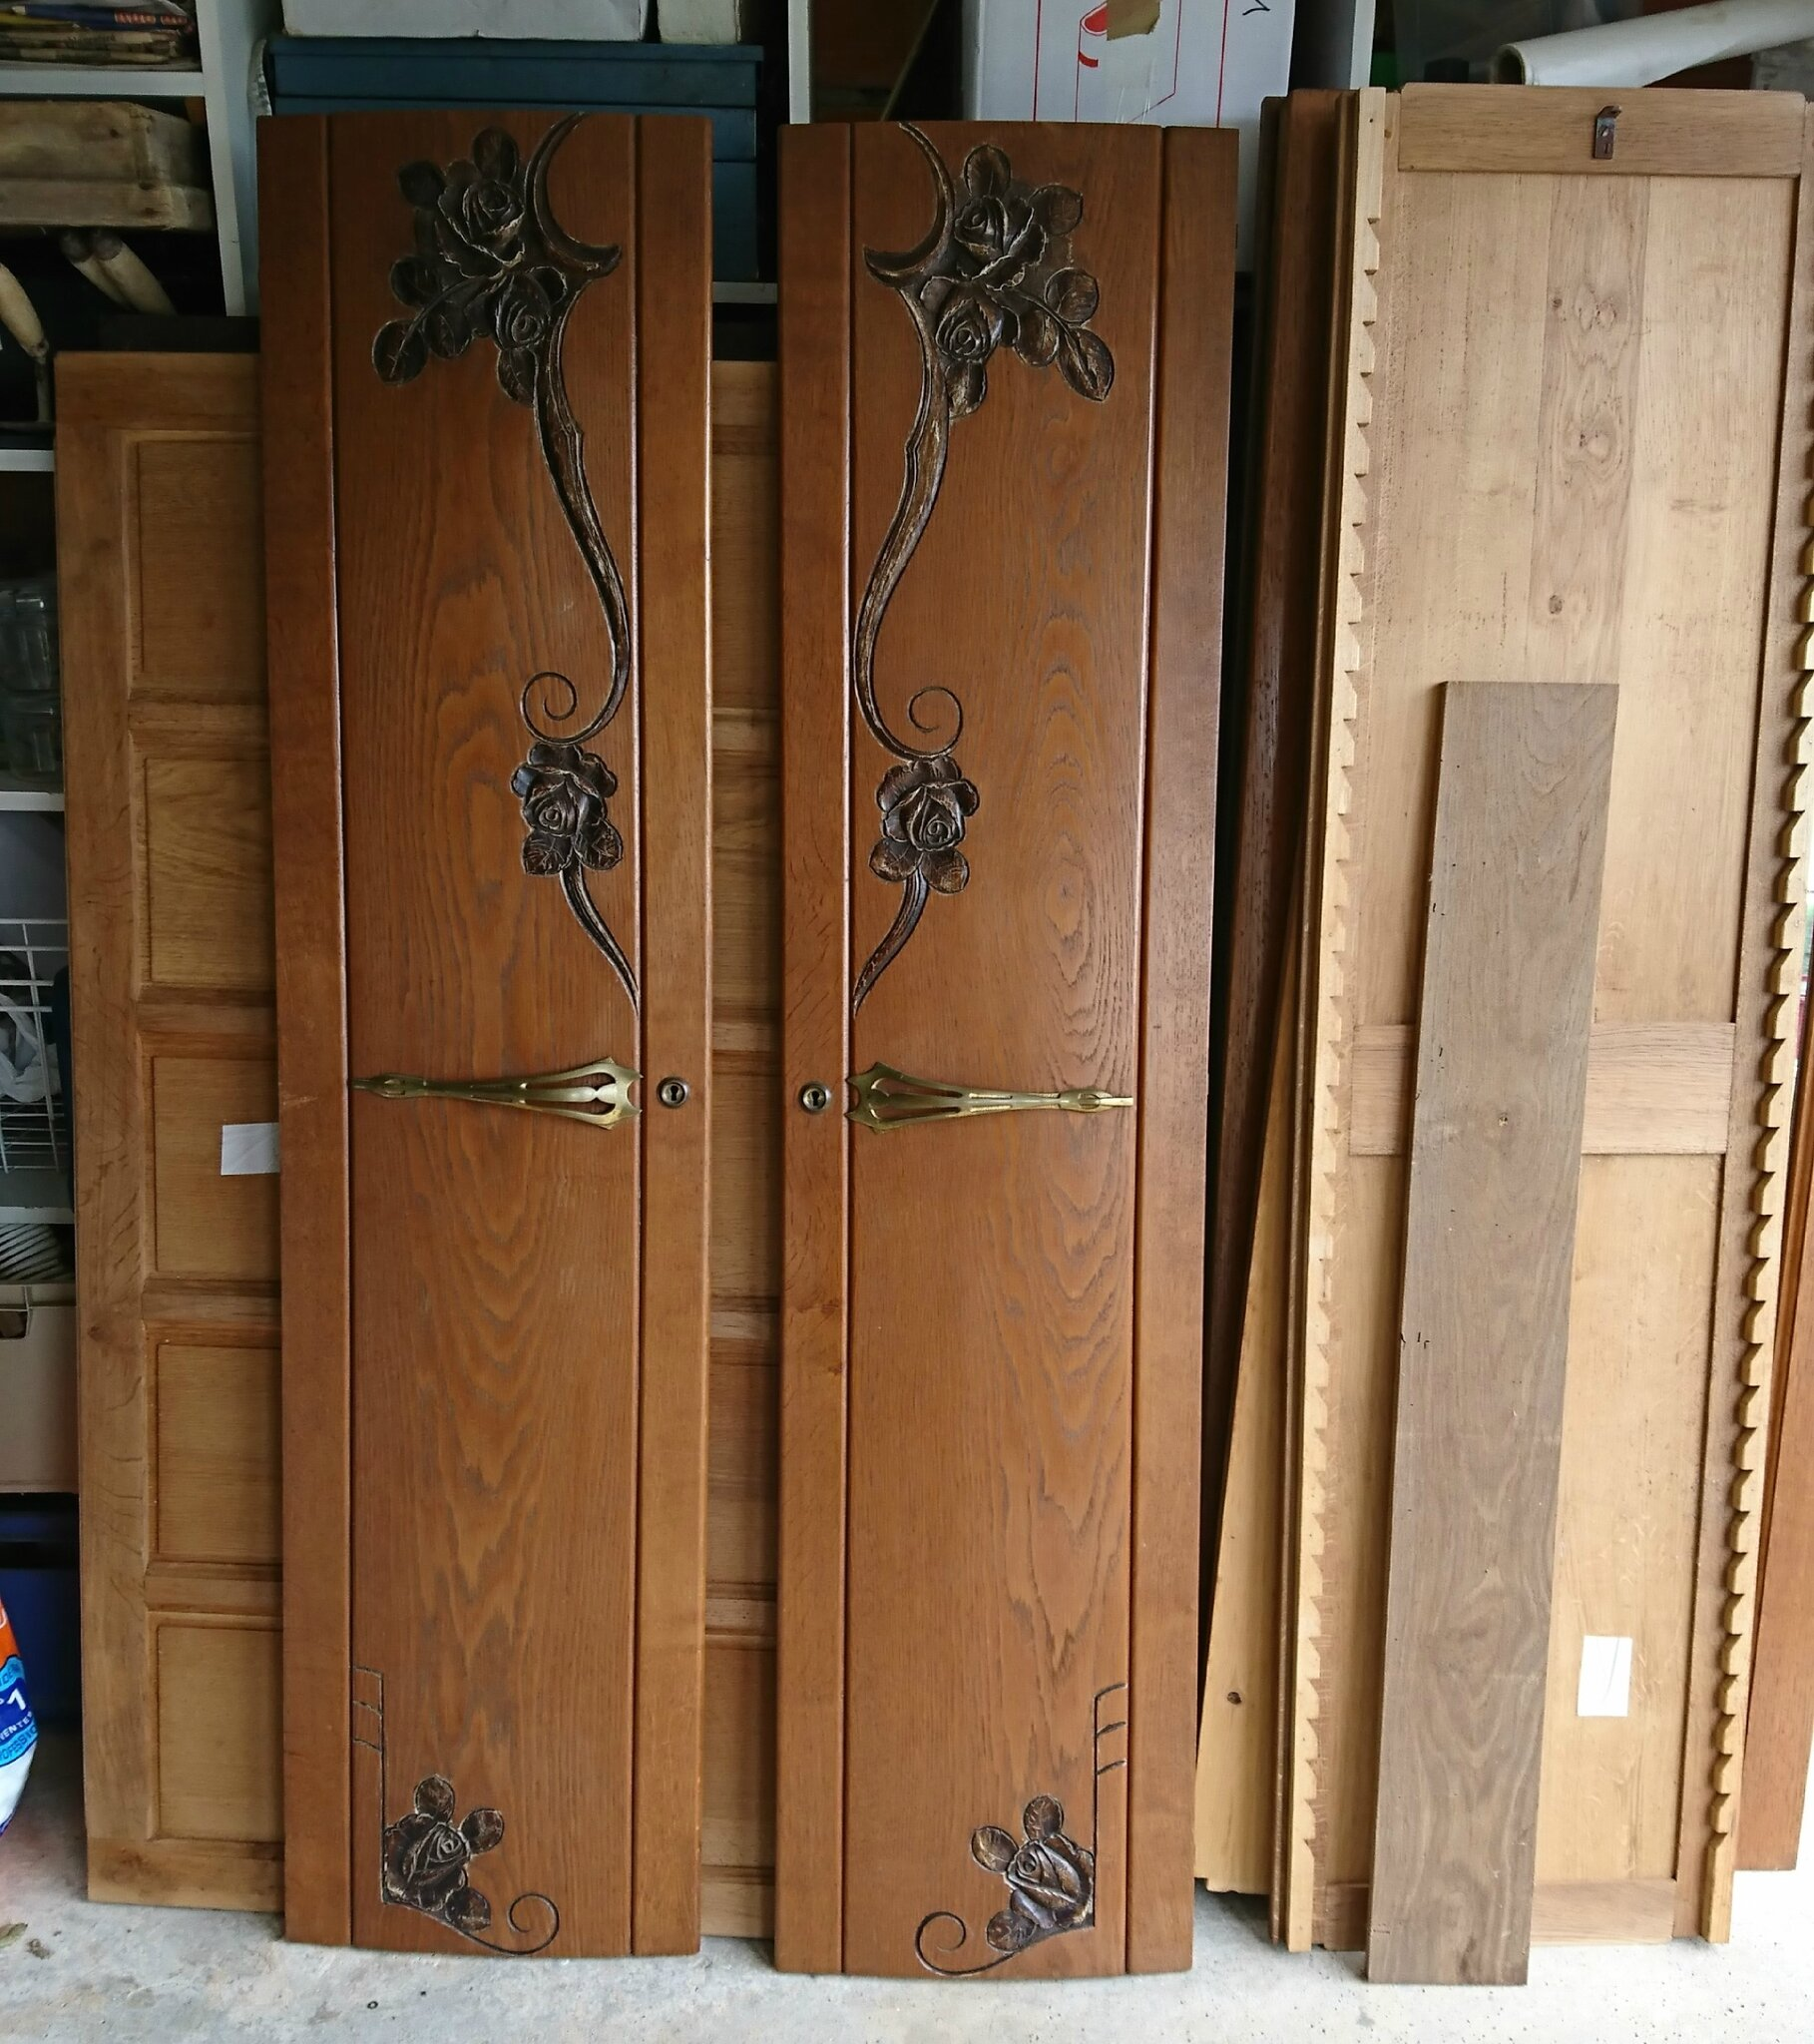 transformer une armoire ancienne top relooker une armoire ancienne with transformer une armoire. Black Bedroom Furniture Sets. Home Design Ideas